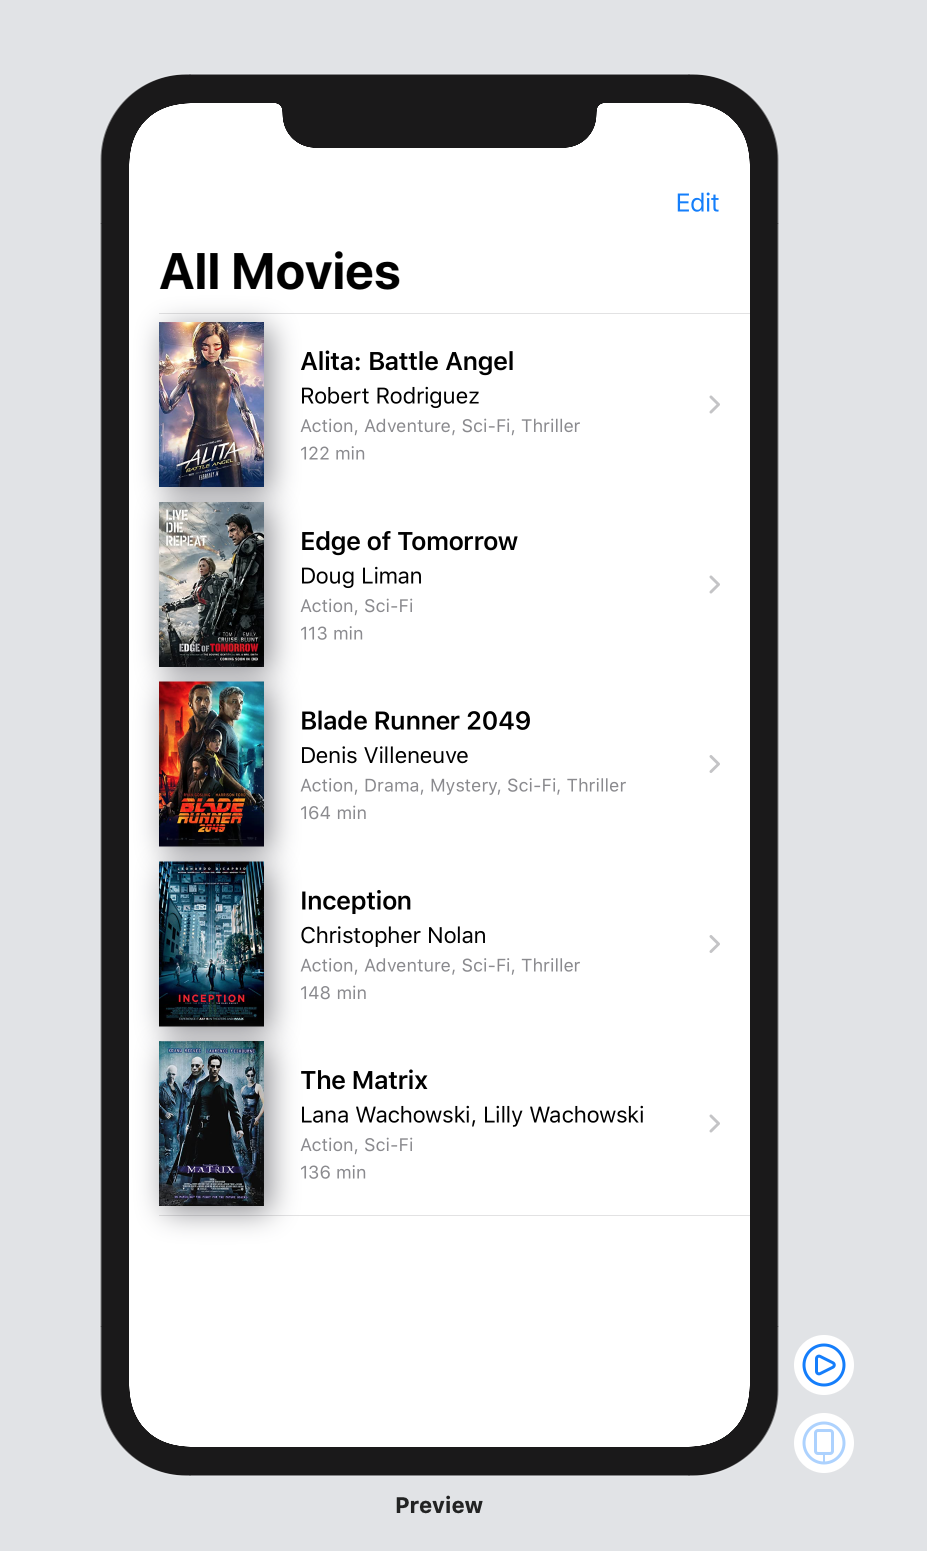 The movies list with a navigation bar at the top